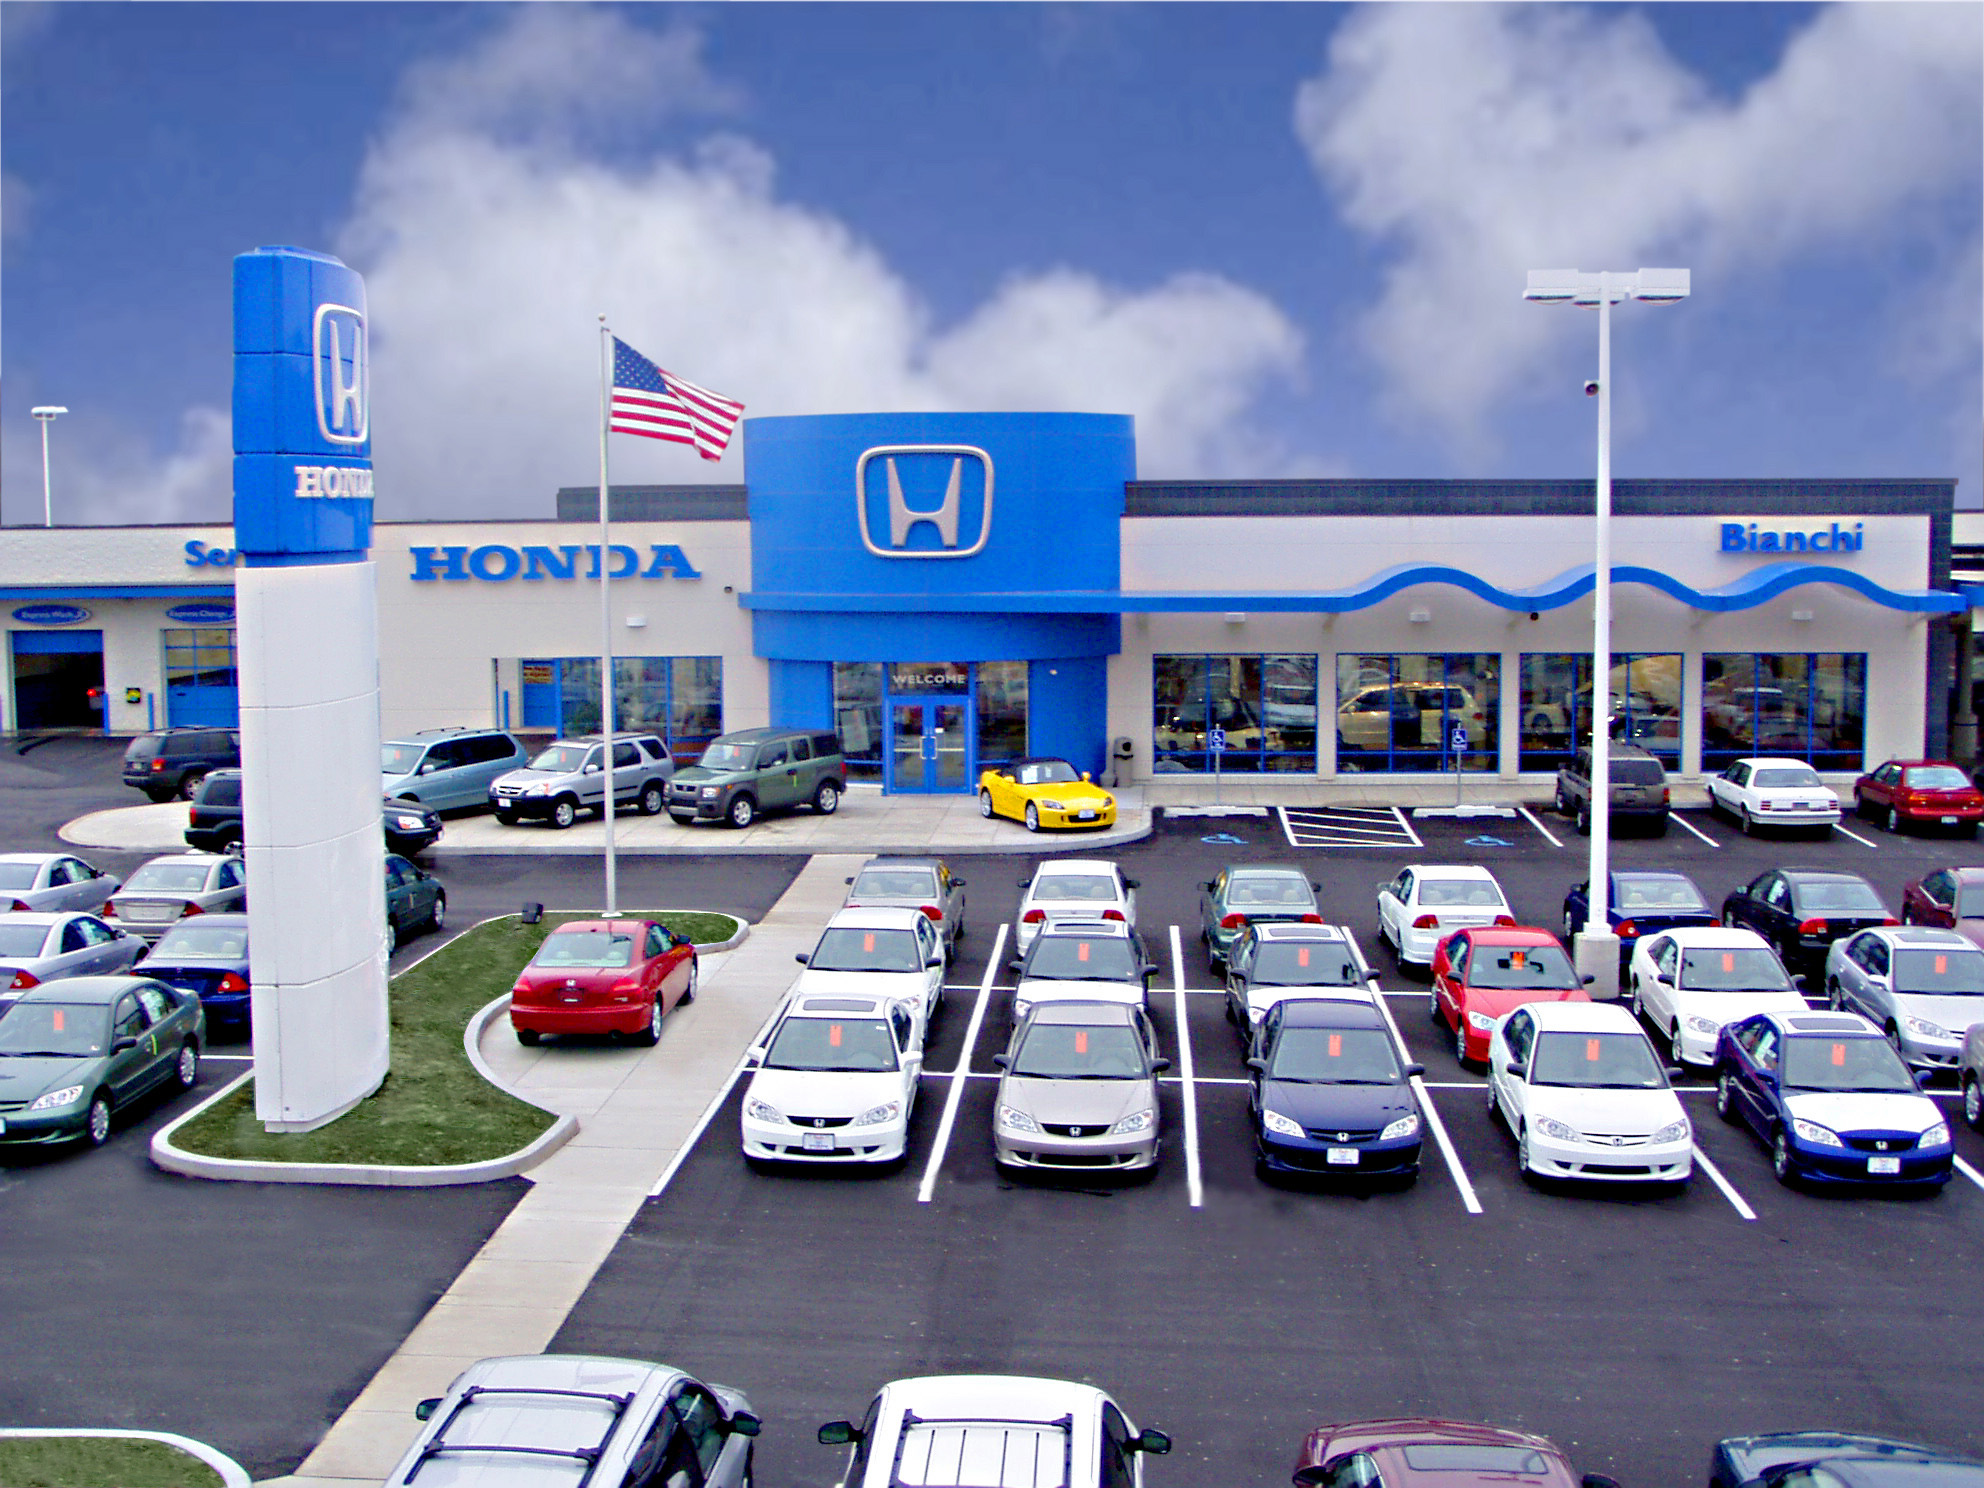 a honda dealership in erie penn h